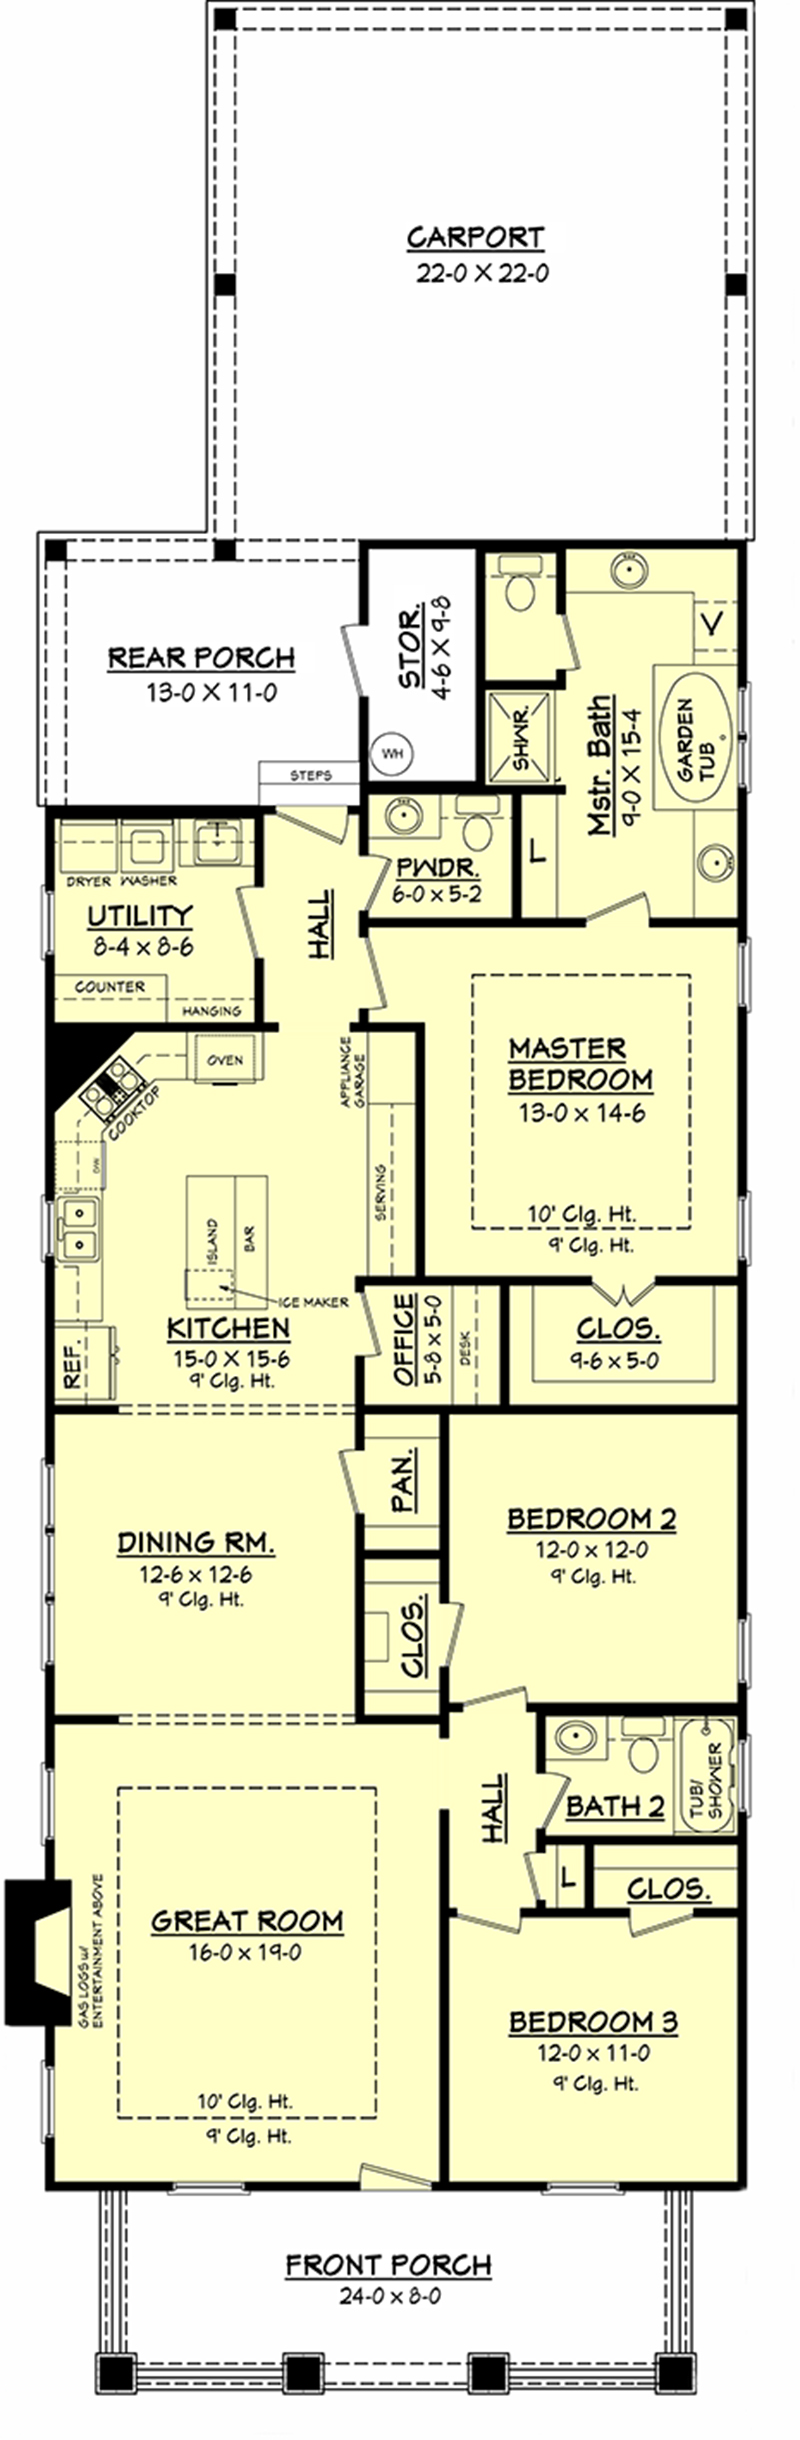 House plan 142 1079 3 bdrm 2 1 2 bath 1800 sq ft for Single level floor plans